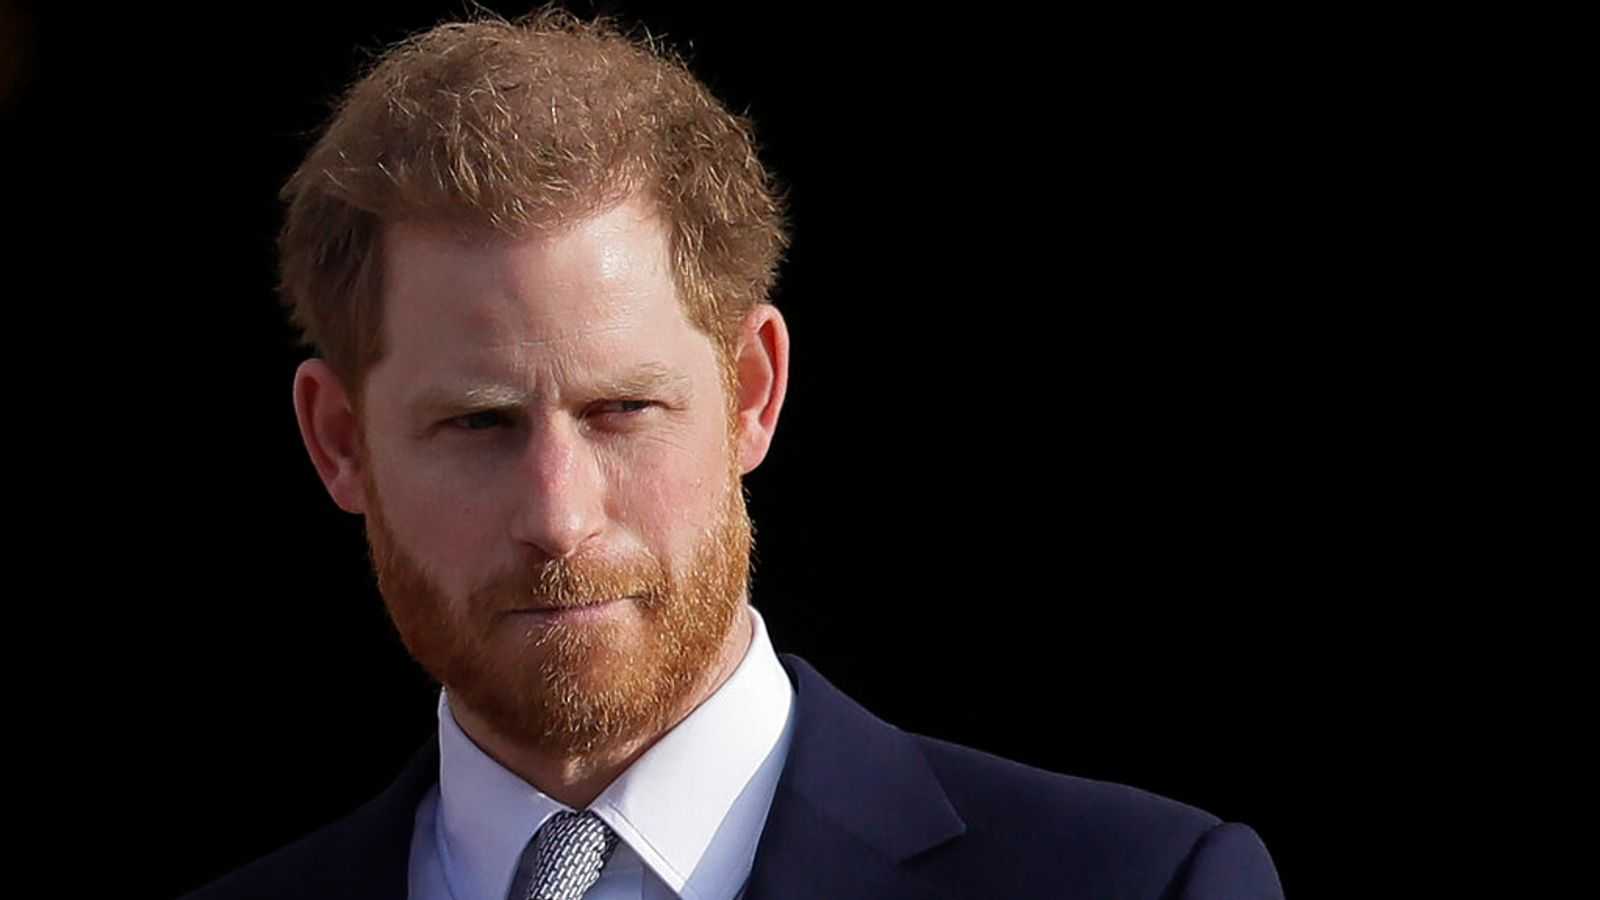 Prince Harry gets job at BetterUp: Duke of Sussex takes up role at  California coaching and mental health business | US News | Sky News